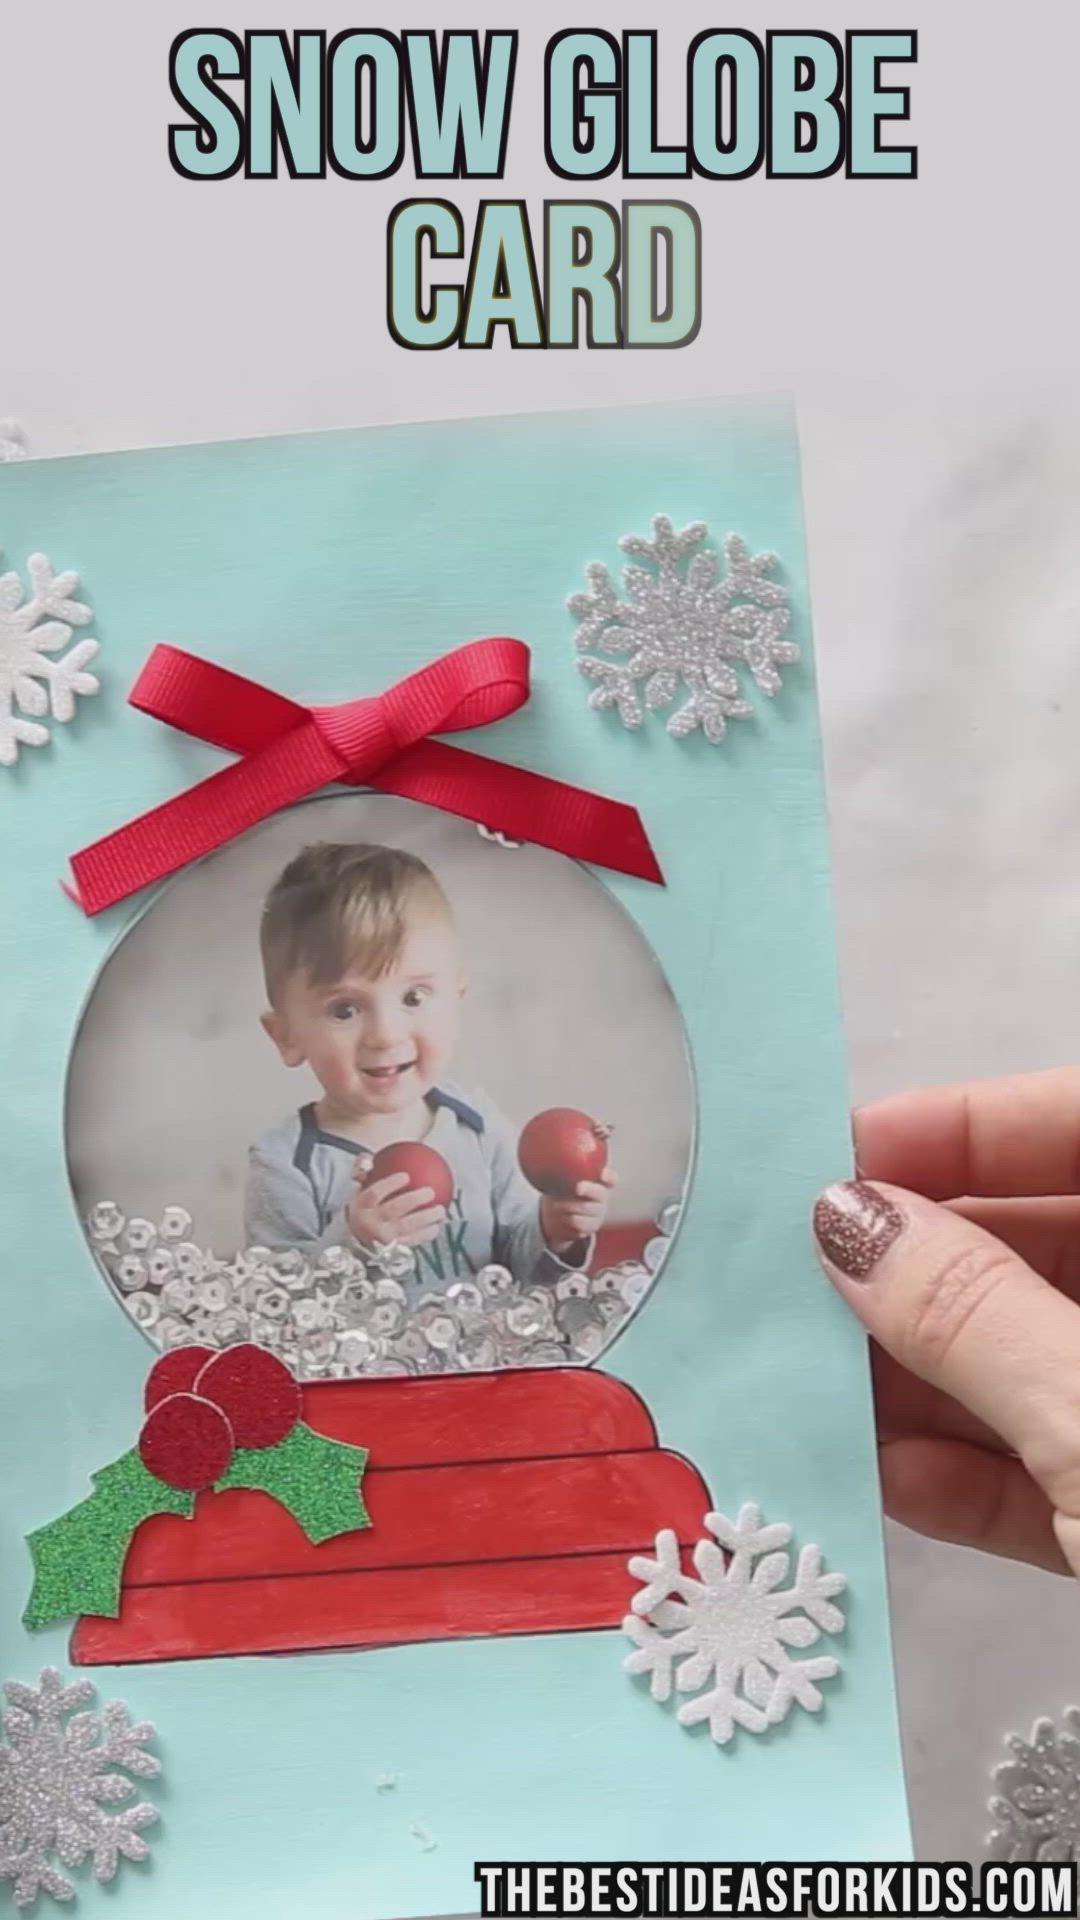 Snow Globe Template Card The Best Ideas For Kids Video Video Diy Christmas Cards Christmas Crafts For Kids Christmas Crafts